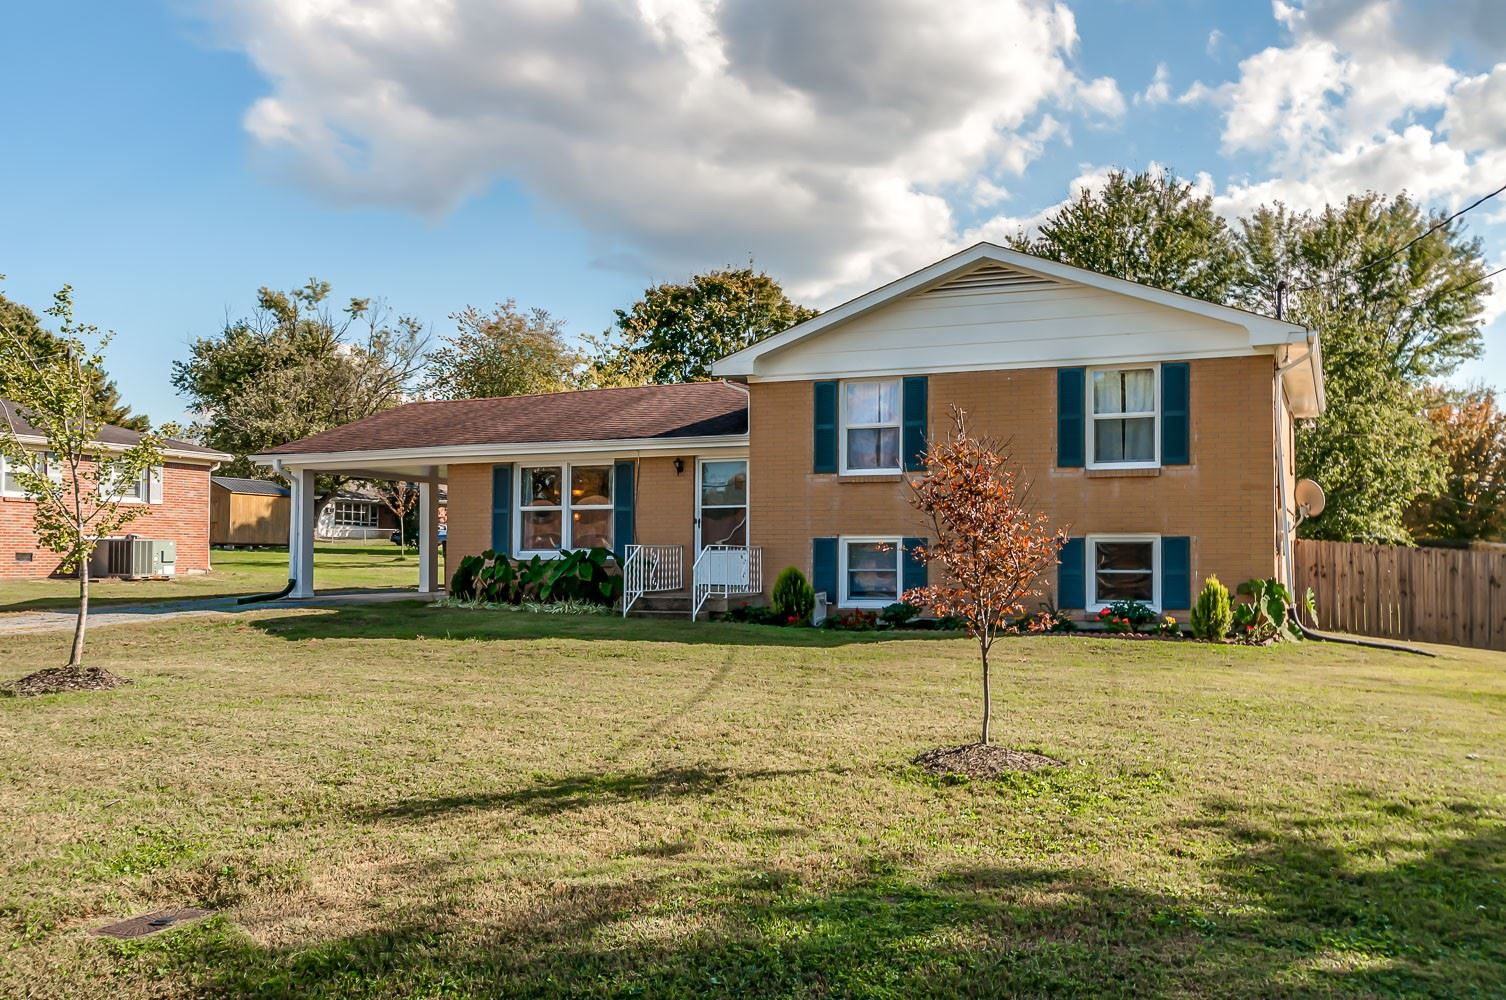 186 Witherspoon Ave, Gallatin, TN 37066 - MLS#: 2200750